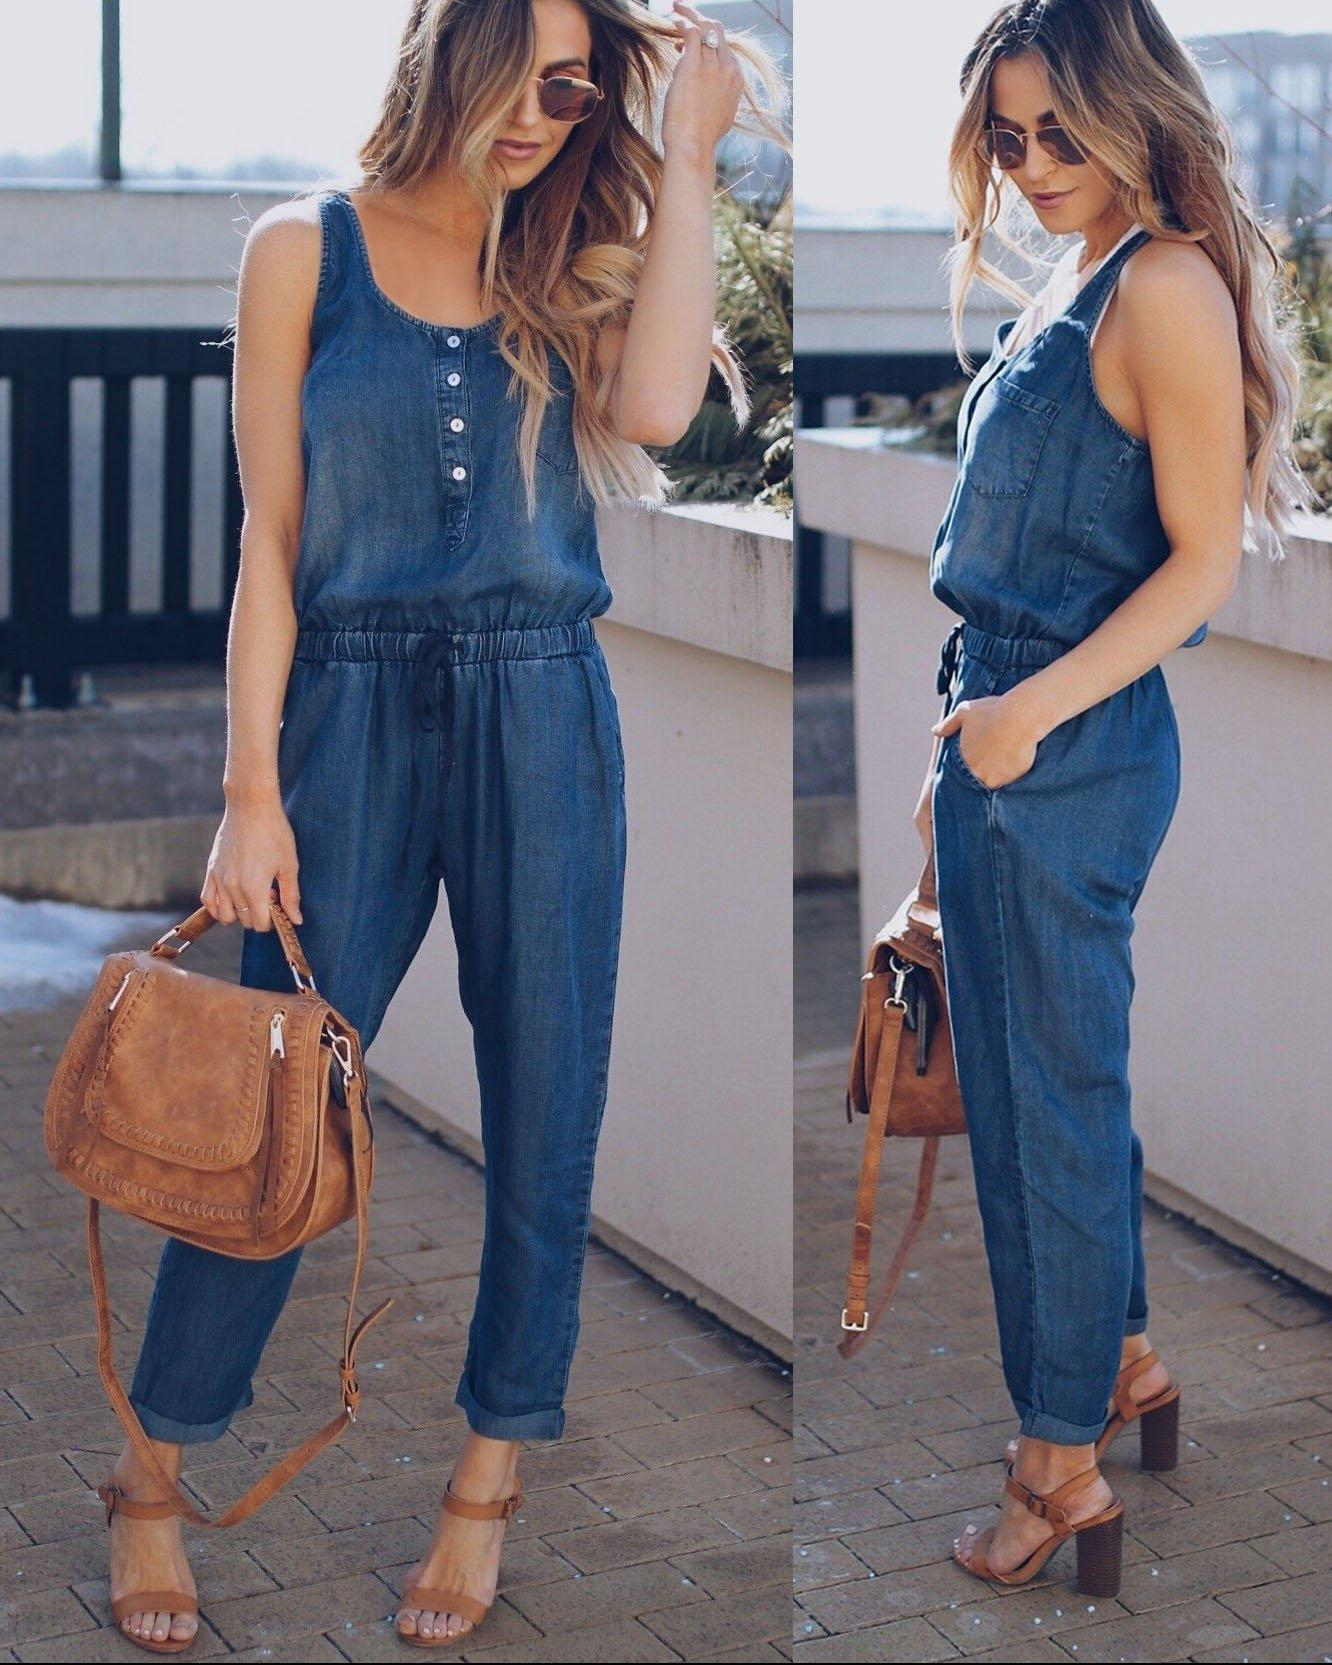 Kind-Hearted 2019 Fashion Strap Jumpsuit Sleeveless Solid Rompers Women Pants Casual Pockets Backless Jumpsuit 2019 New Fashion Style Online Women's Clothing